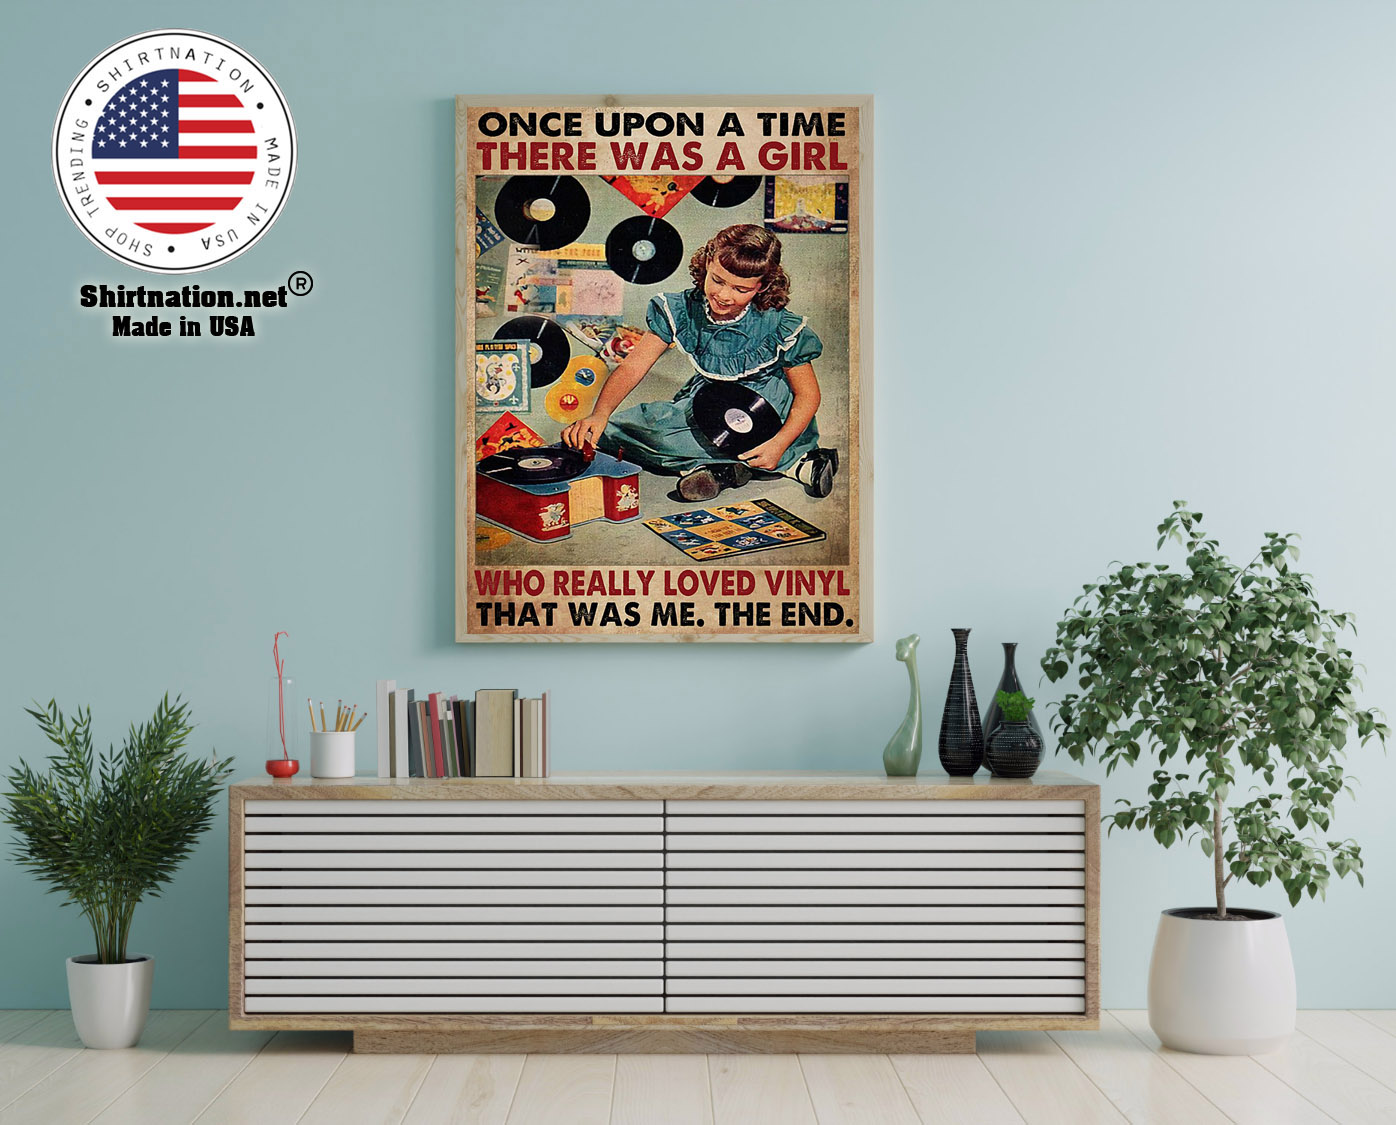 Once upon a time there was a girl who really loved vinyl poster 12